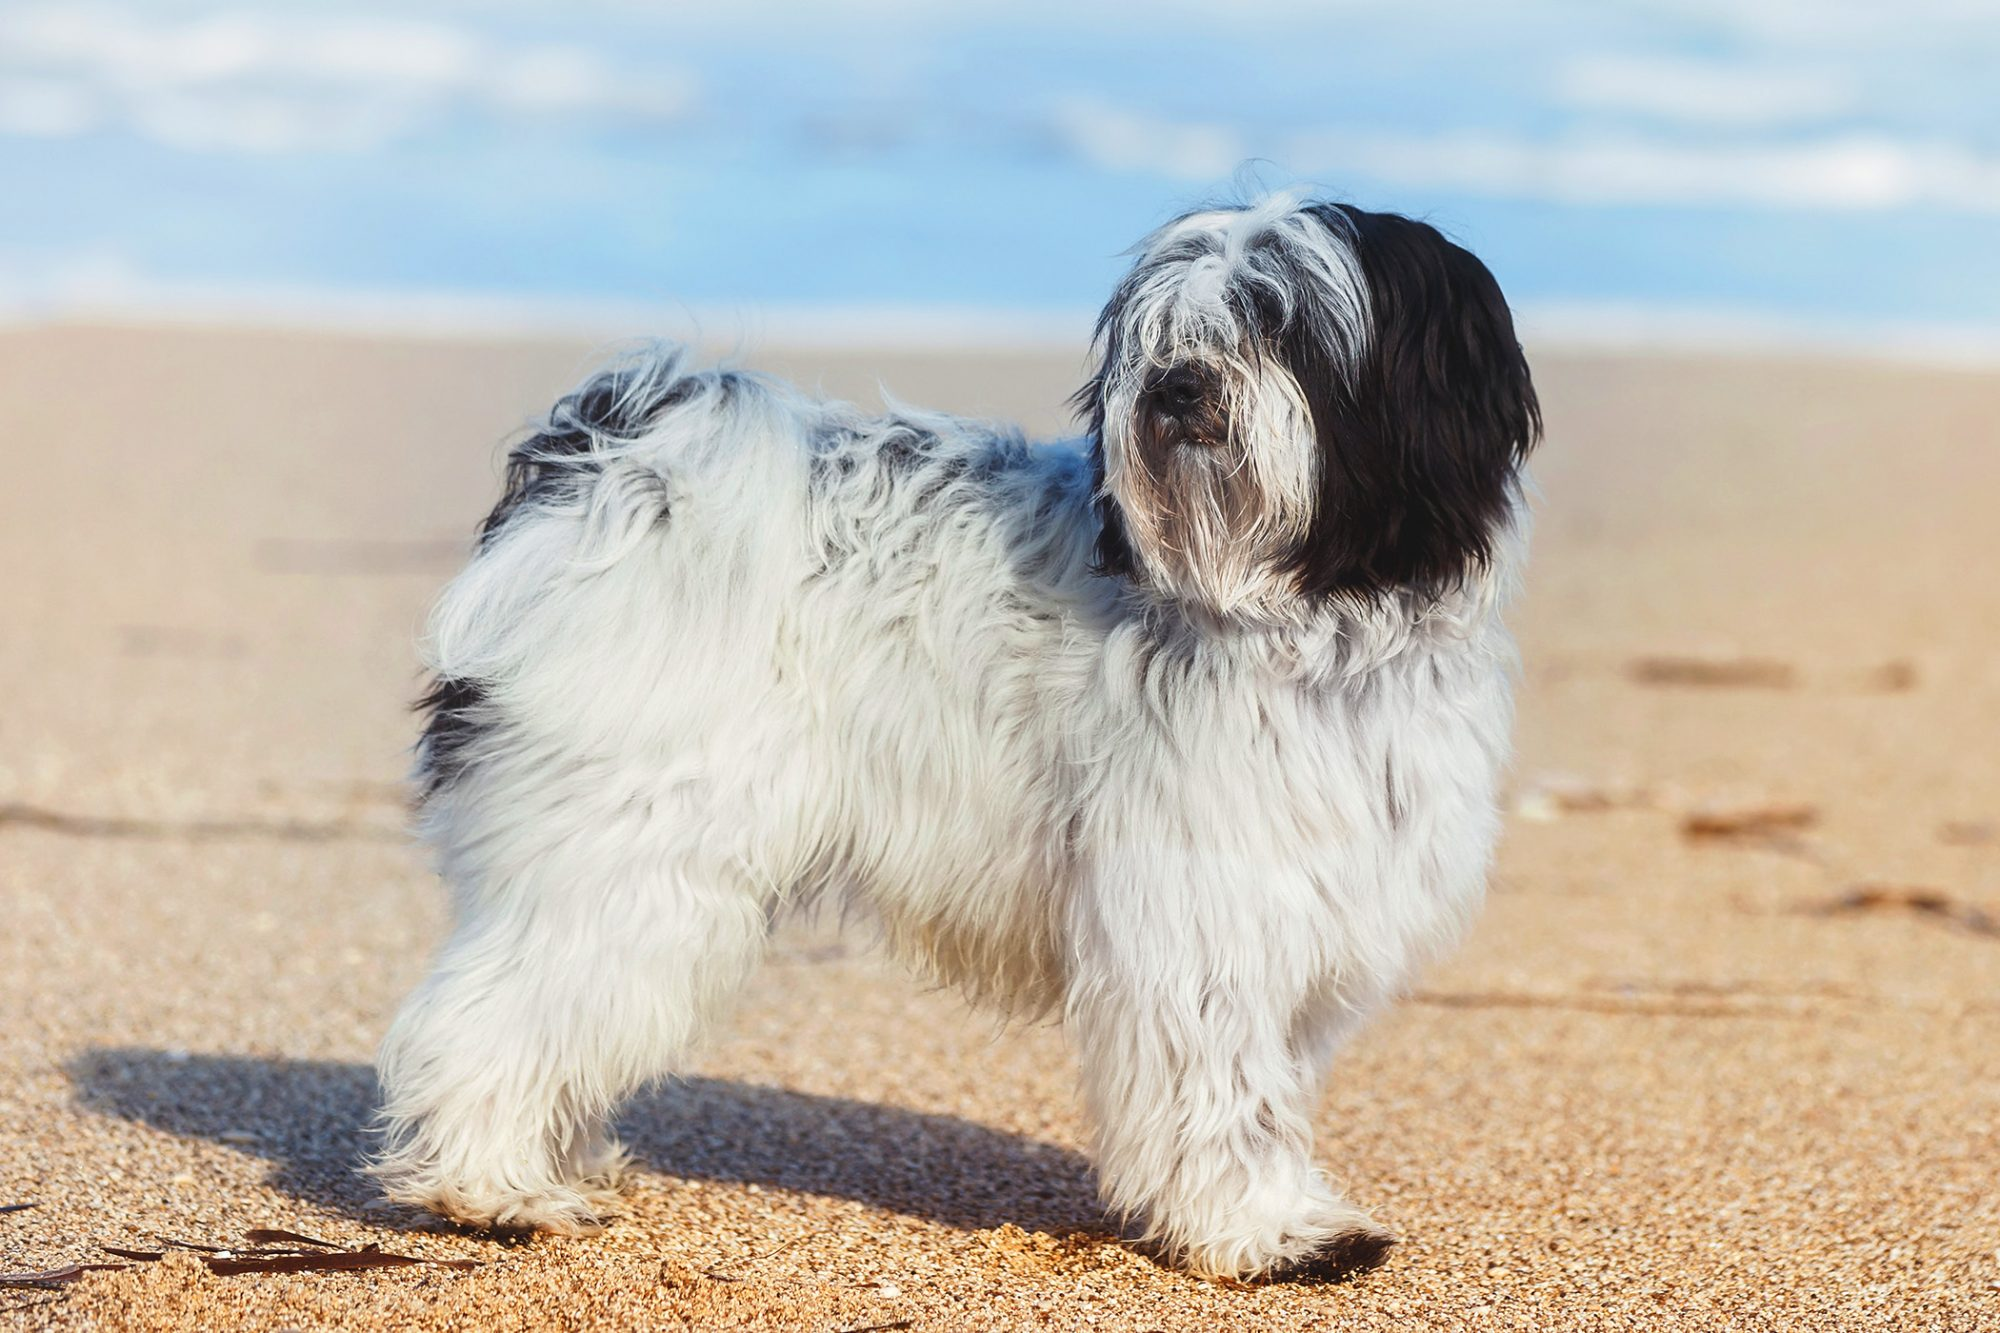 Tibetan Terrier sanding on beach